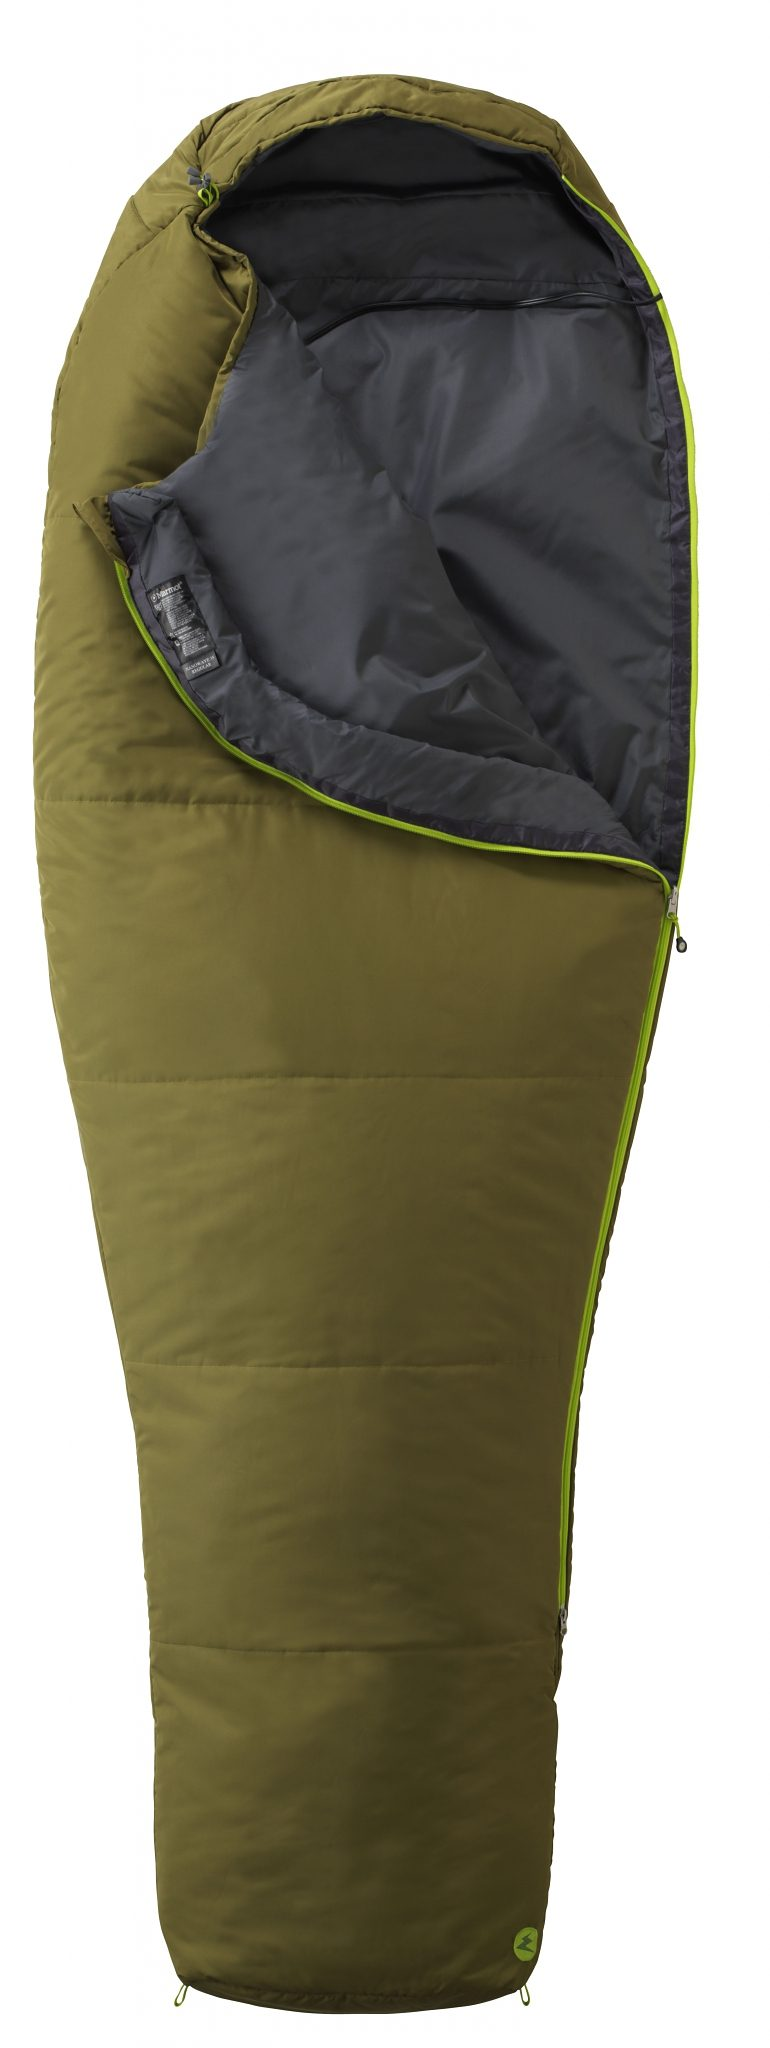 Marmot Schlafsack »NanoWave 35 Sleeping Bag Long«